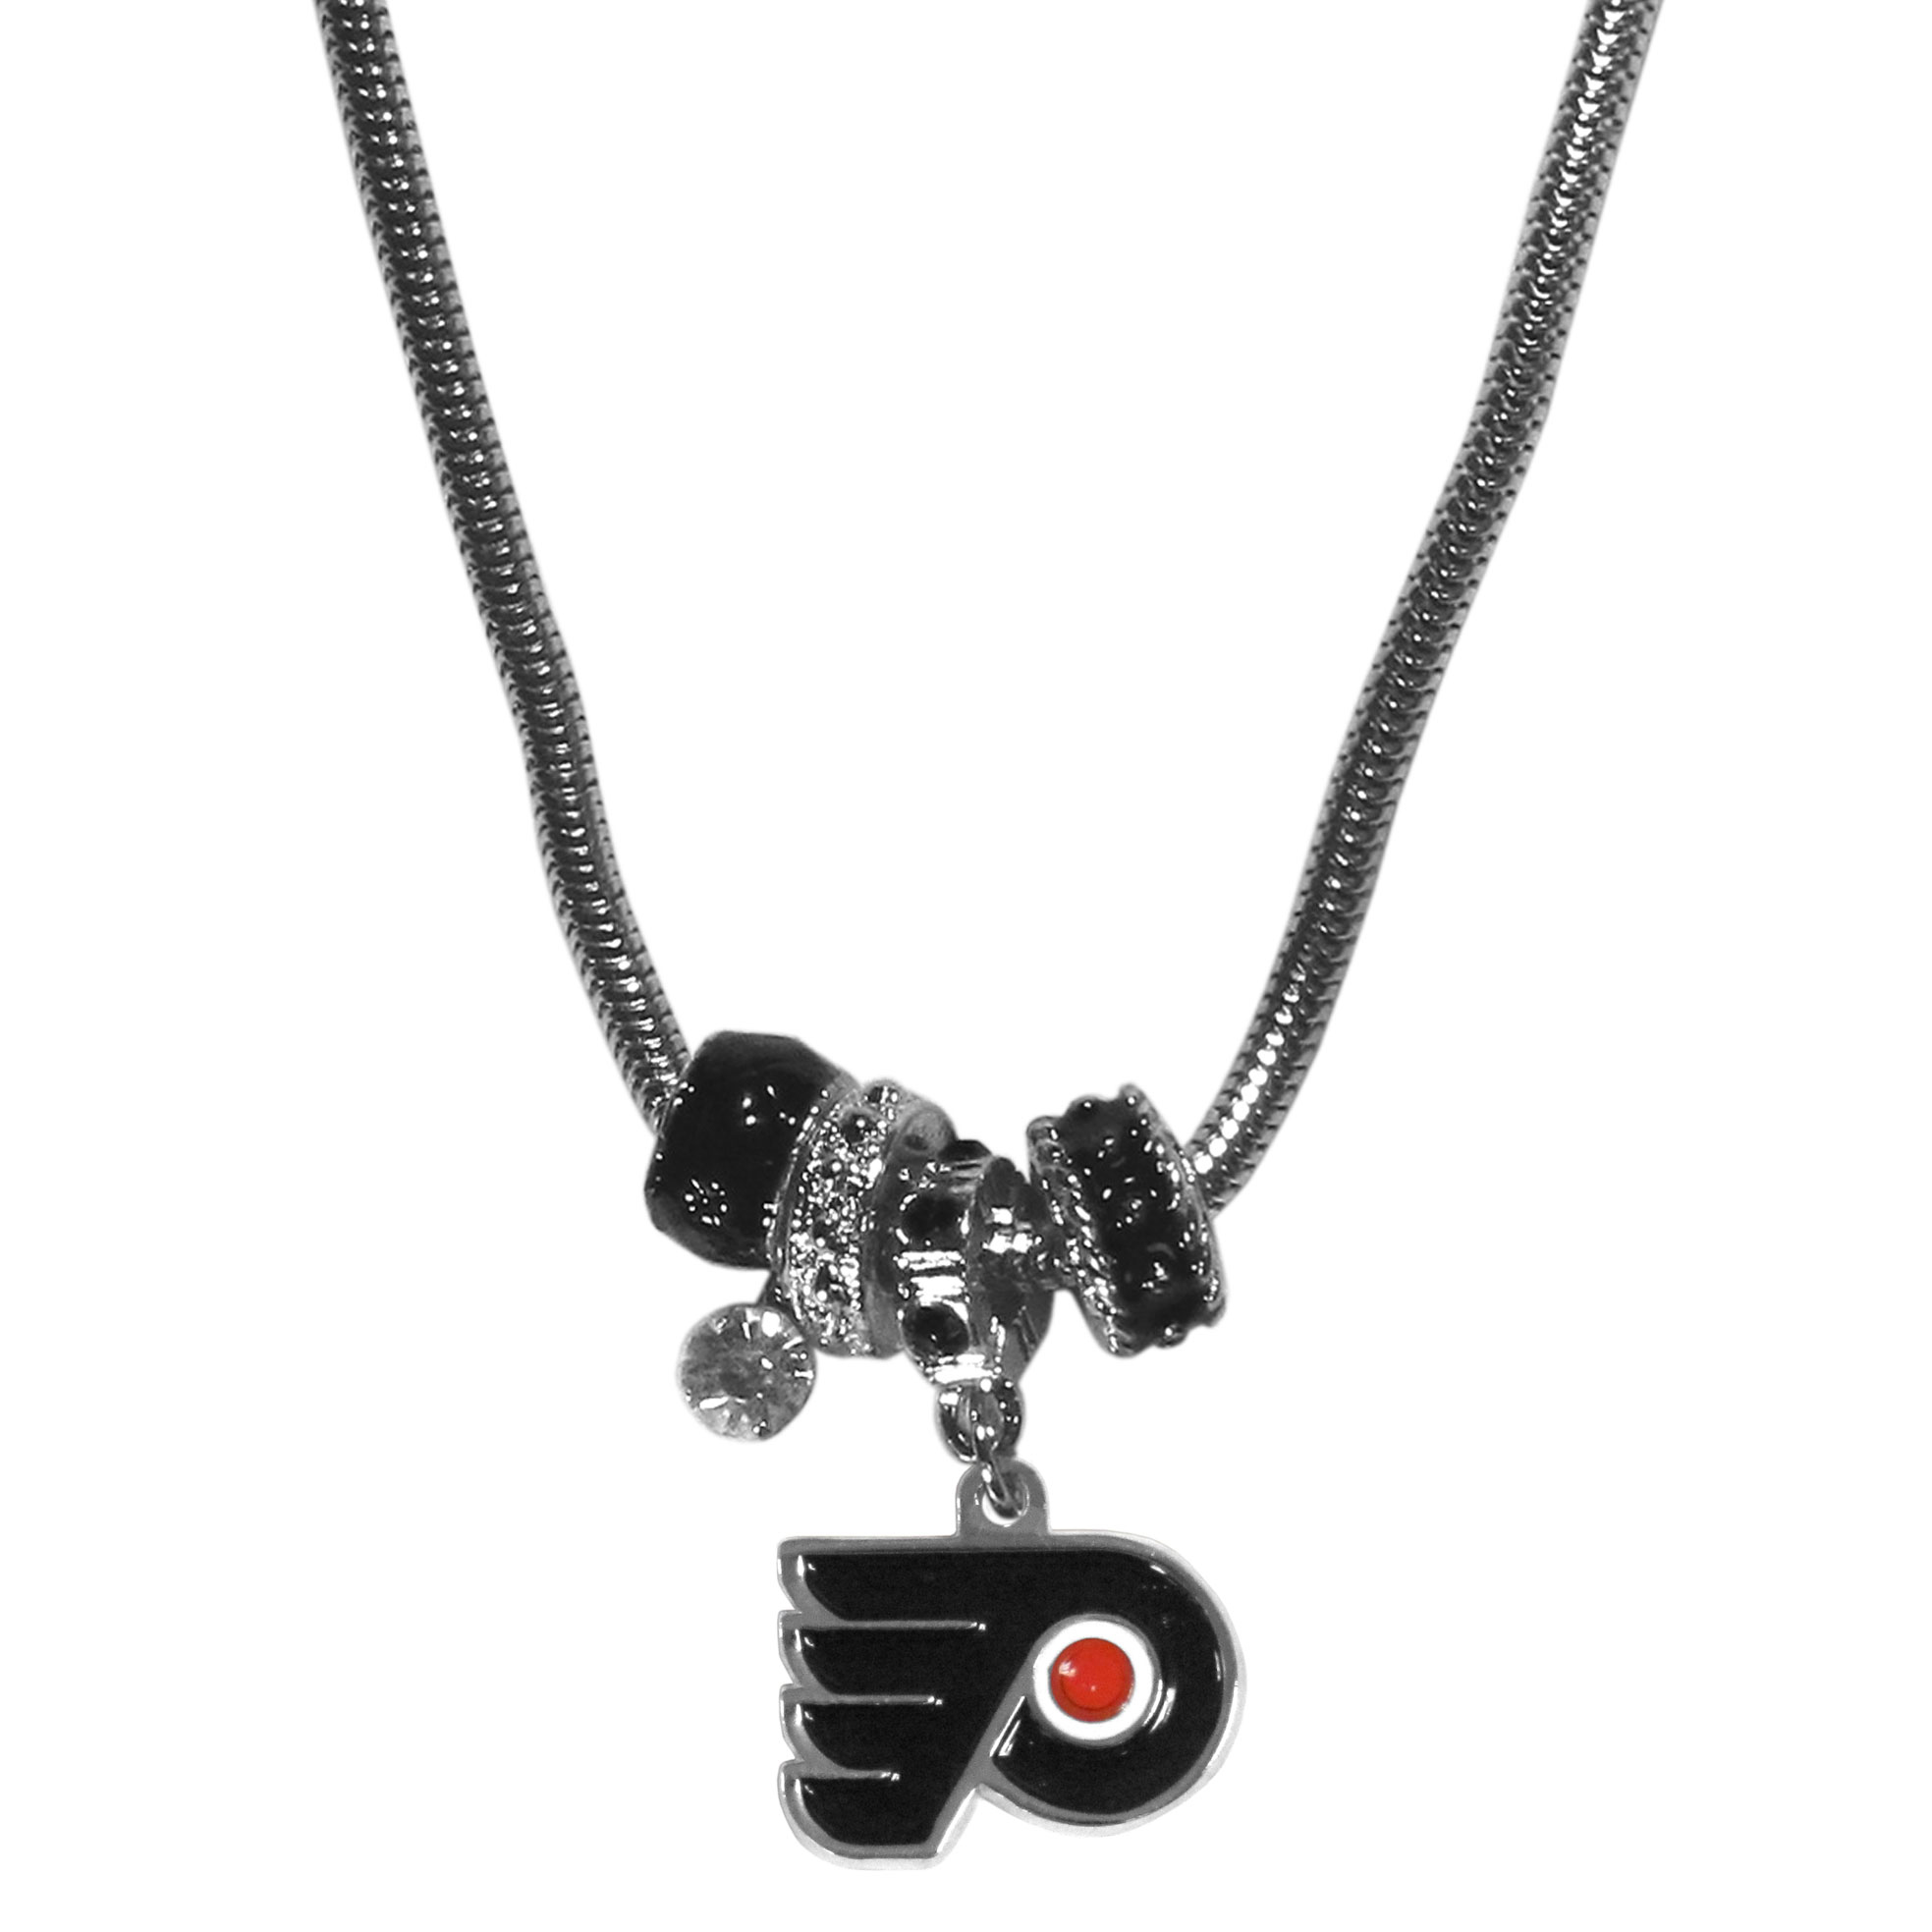 Philadelphia Flyers Euro Bead Necklace - We have combined the wildly popular Euro style beads with your favorite team to create our Philadelphia Flyers bead necklace. The 18 inch snake chain features 4 Euro beads with enameled Philadelphia Flyers colors and rhinestone accents with a high polish, nickel free charm and rhinestone charm. Perfect way to show off your Philadelphia Flyers pride.